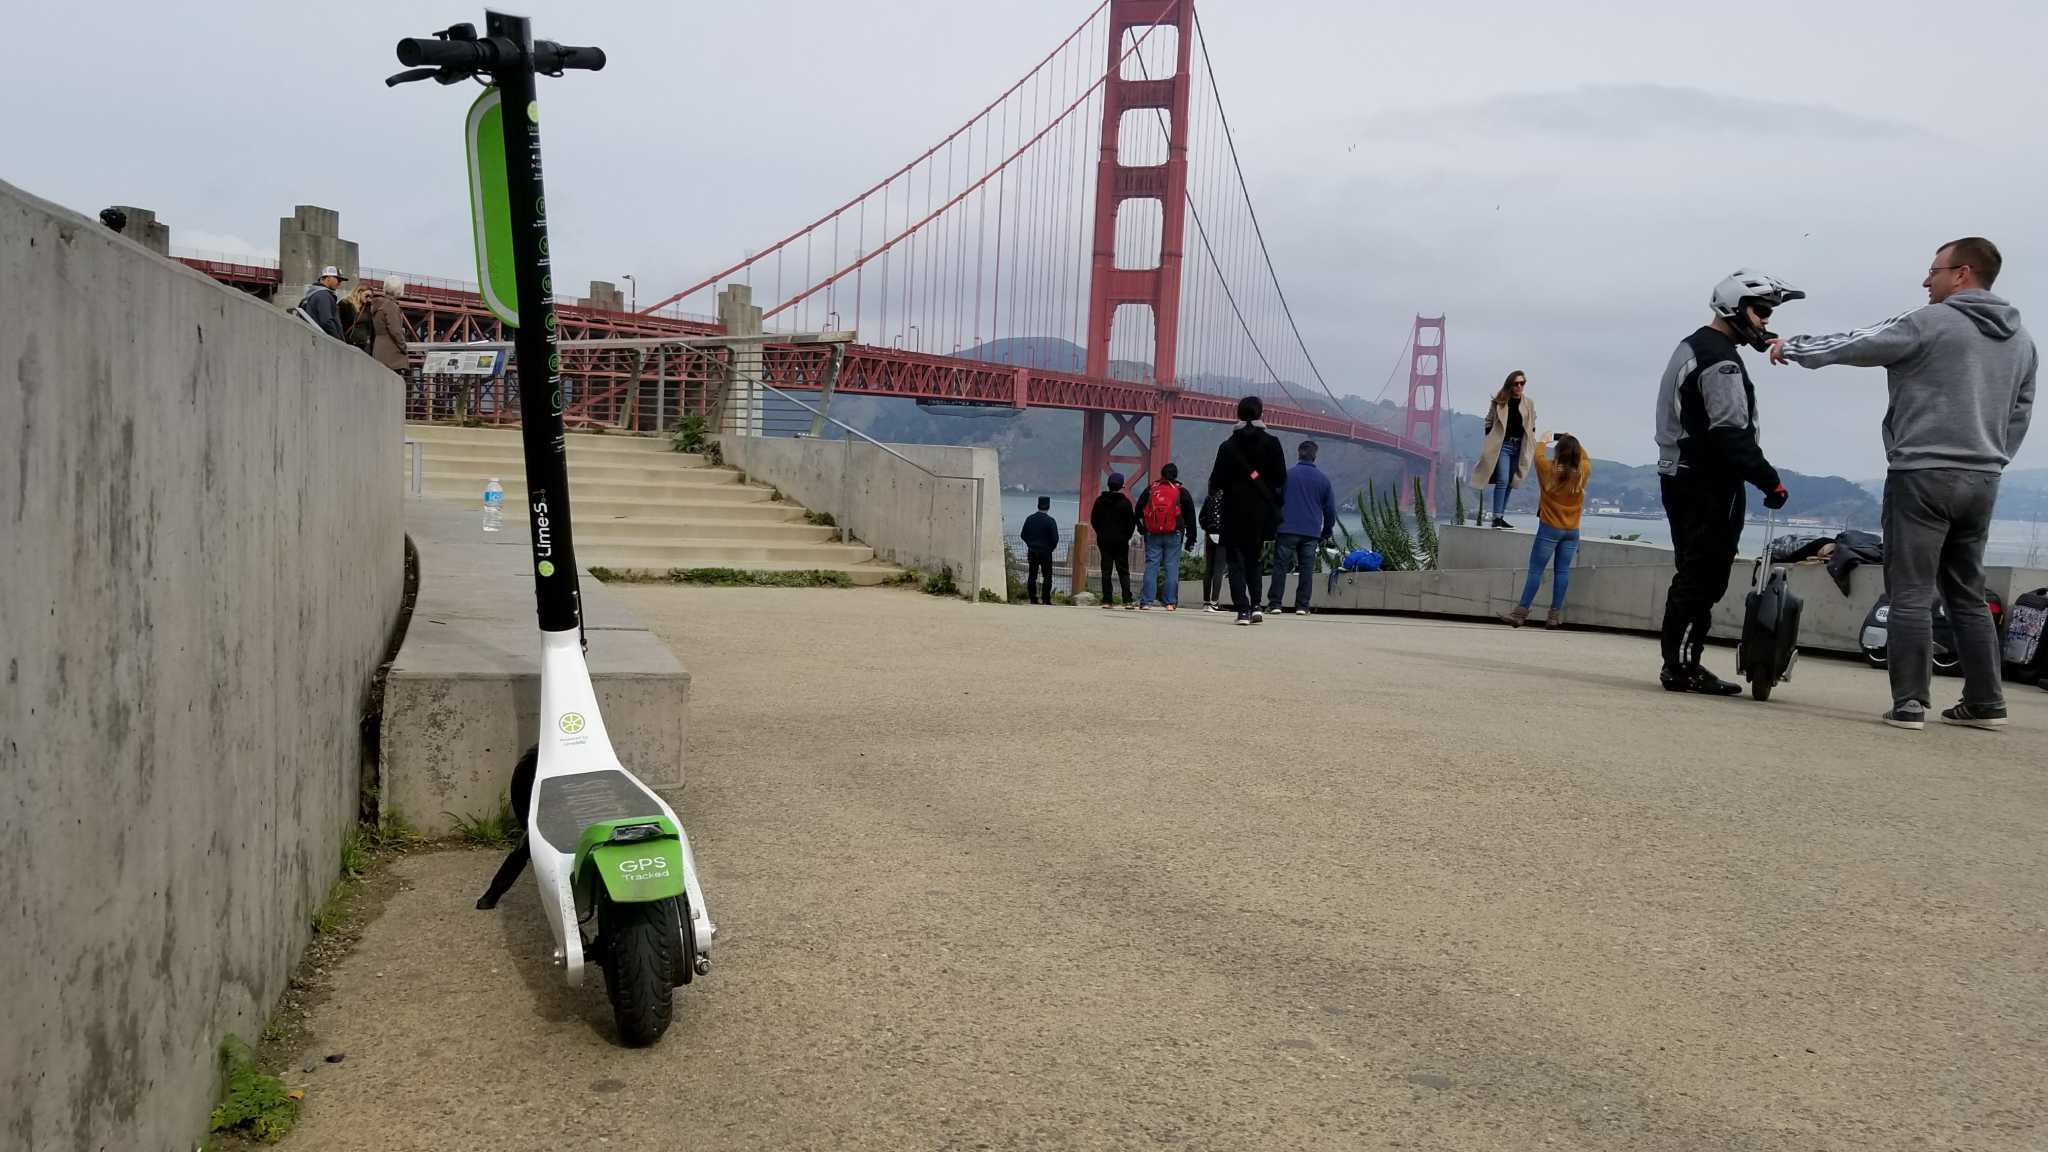 Lime scooters again turned away from San Francisco streets